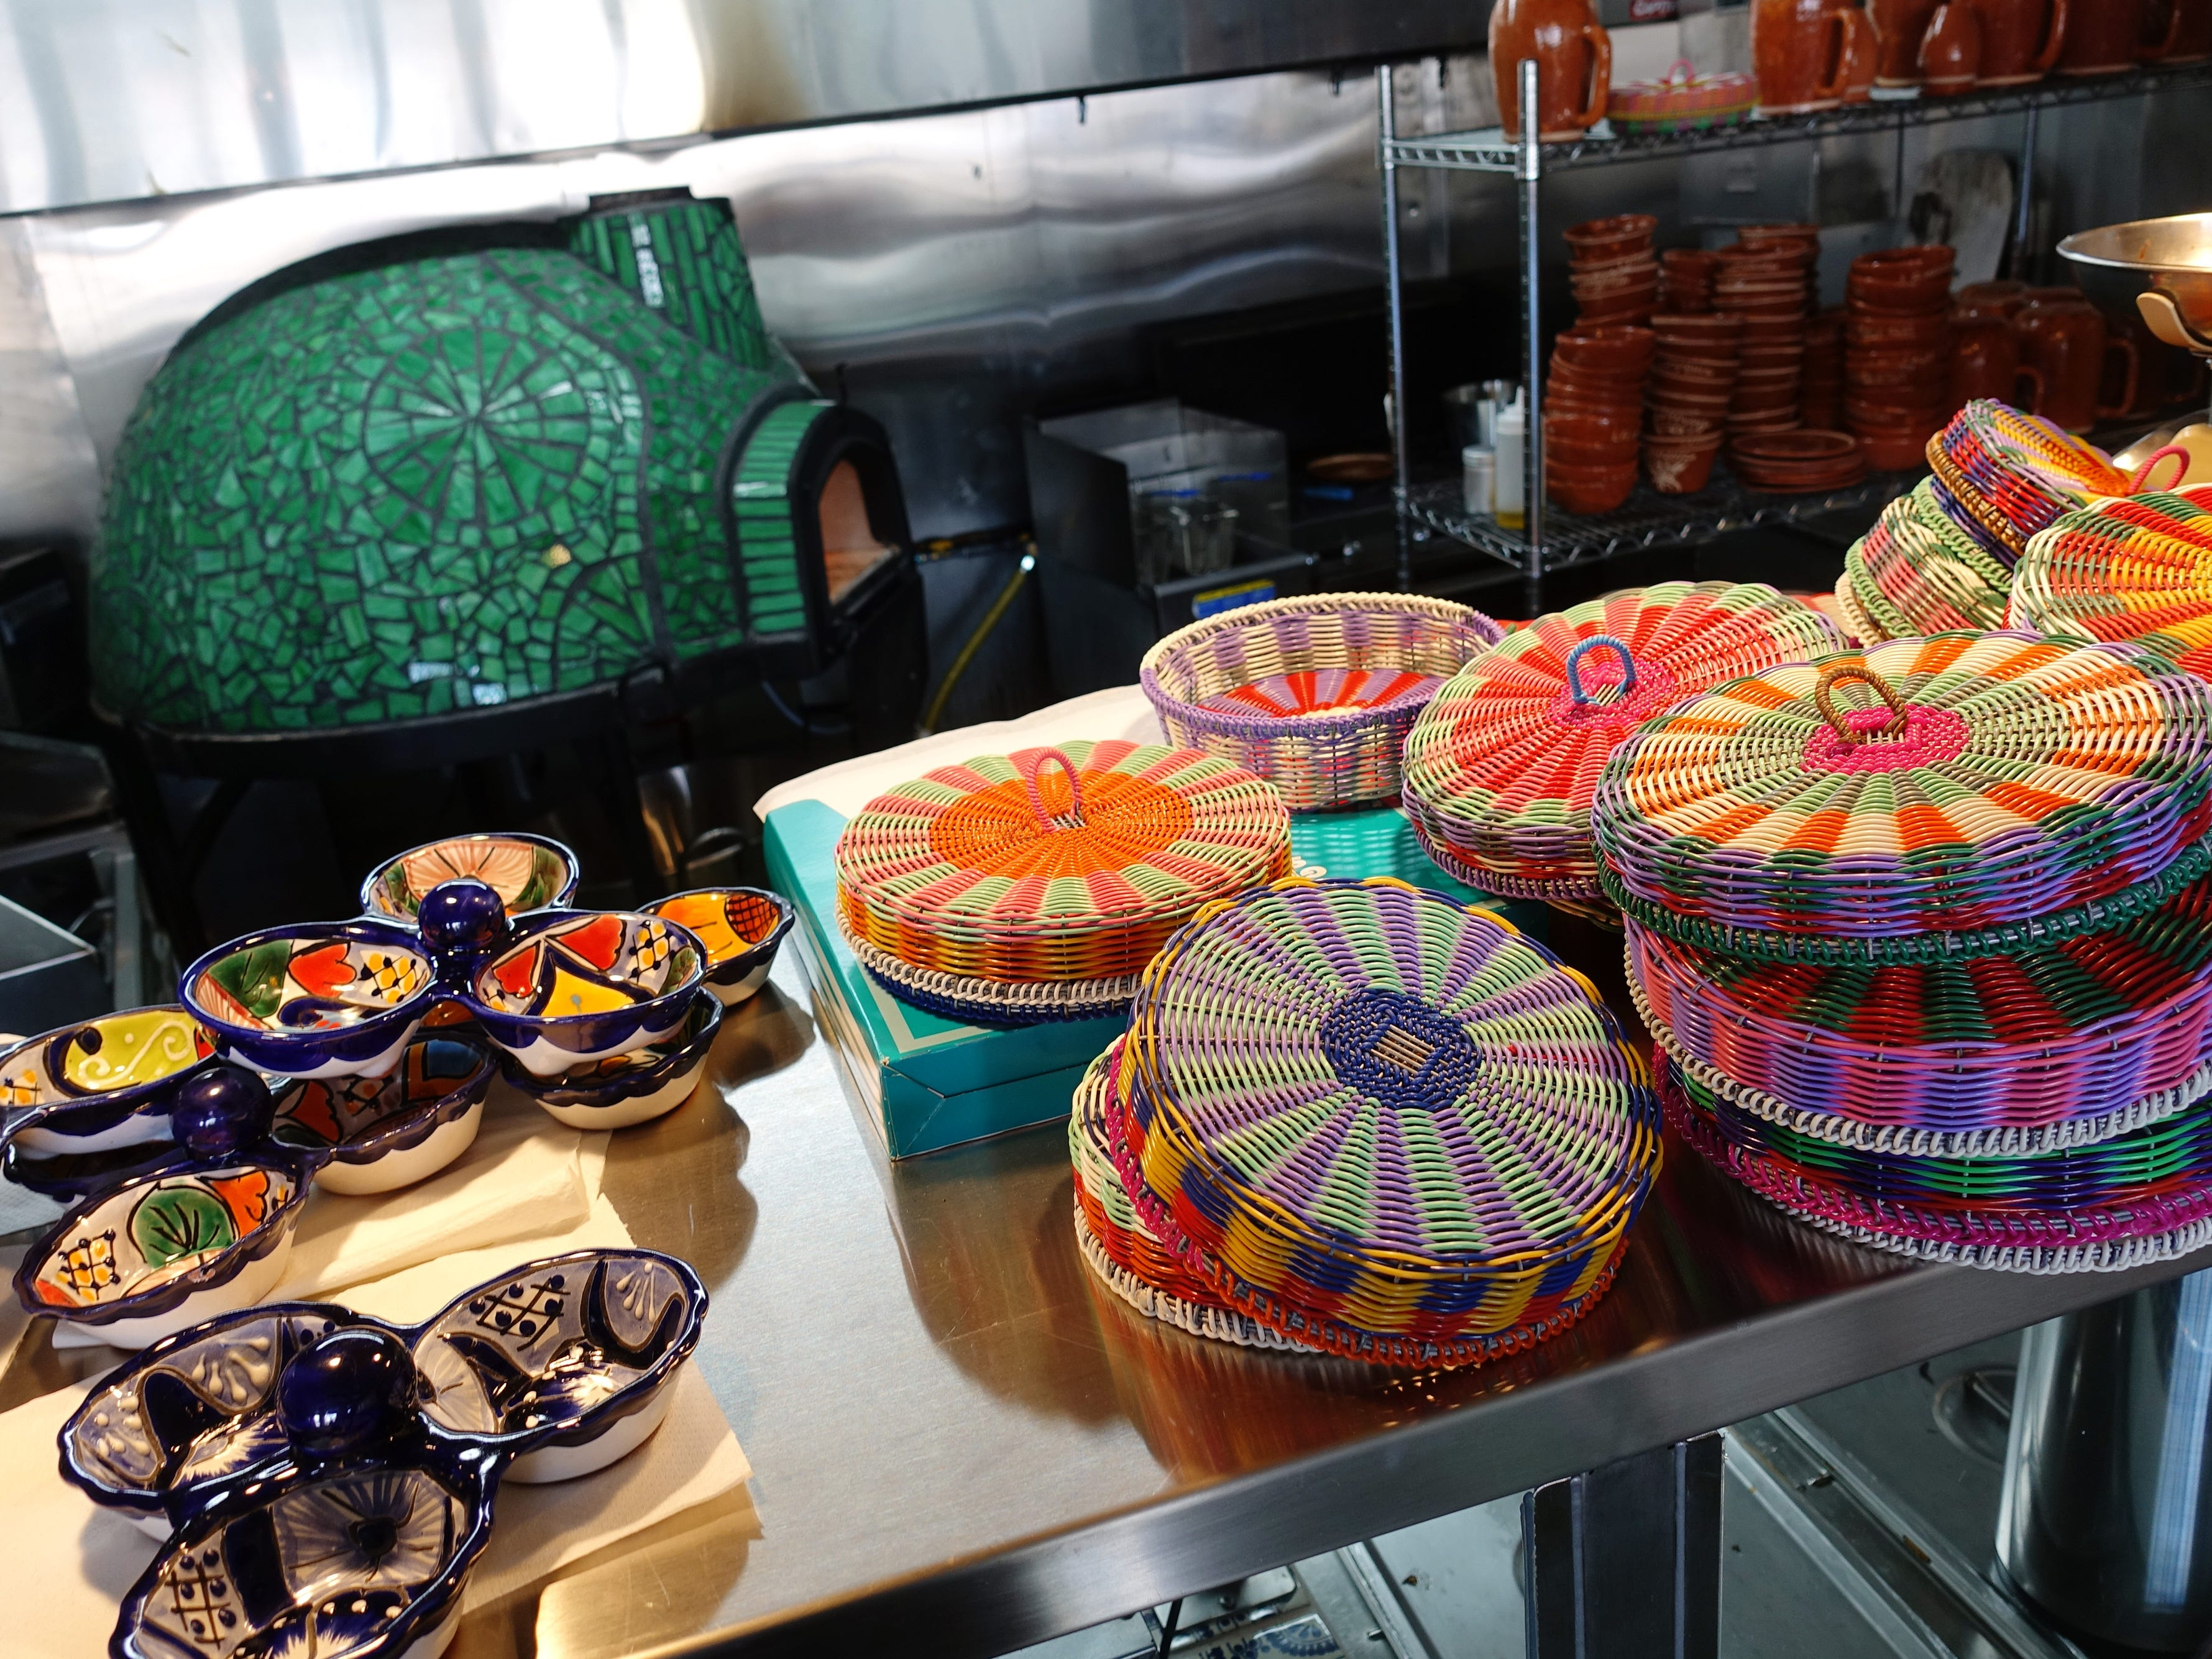 Tortilla baskets and salsa bowls in front of the kitchen's clay oven at La Marquesa in Phoenix.